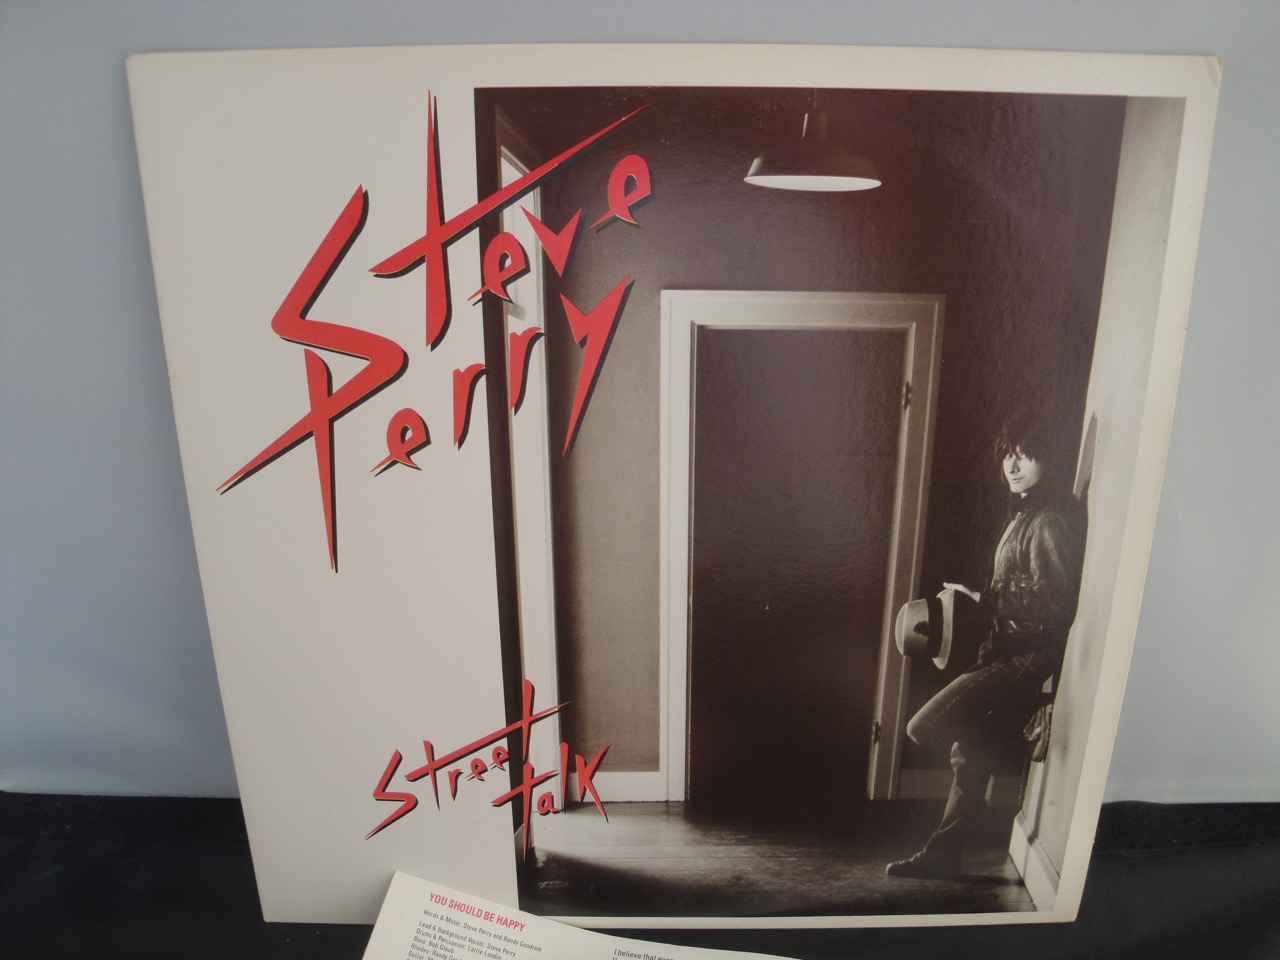 Steve Perry - Street Talk - 1984 Vinyl LP, Columbia Records FC 39334